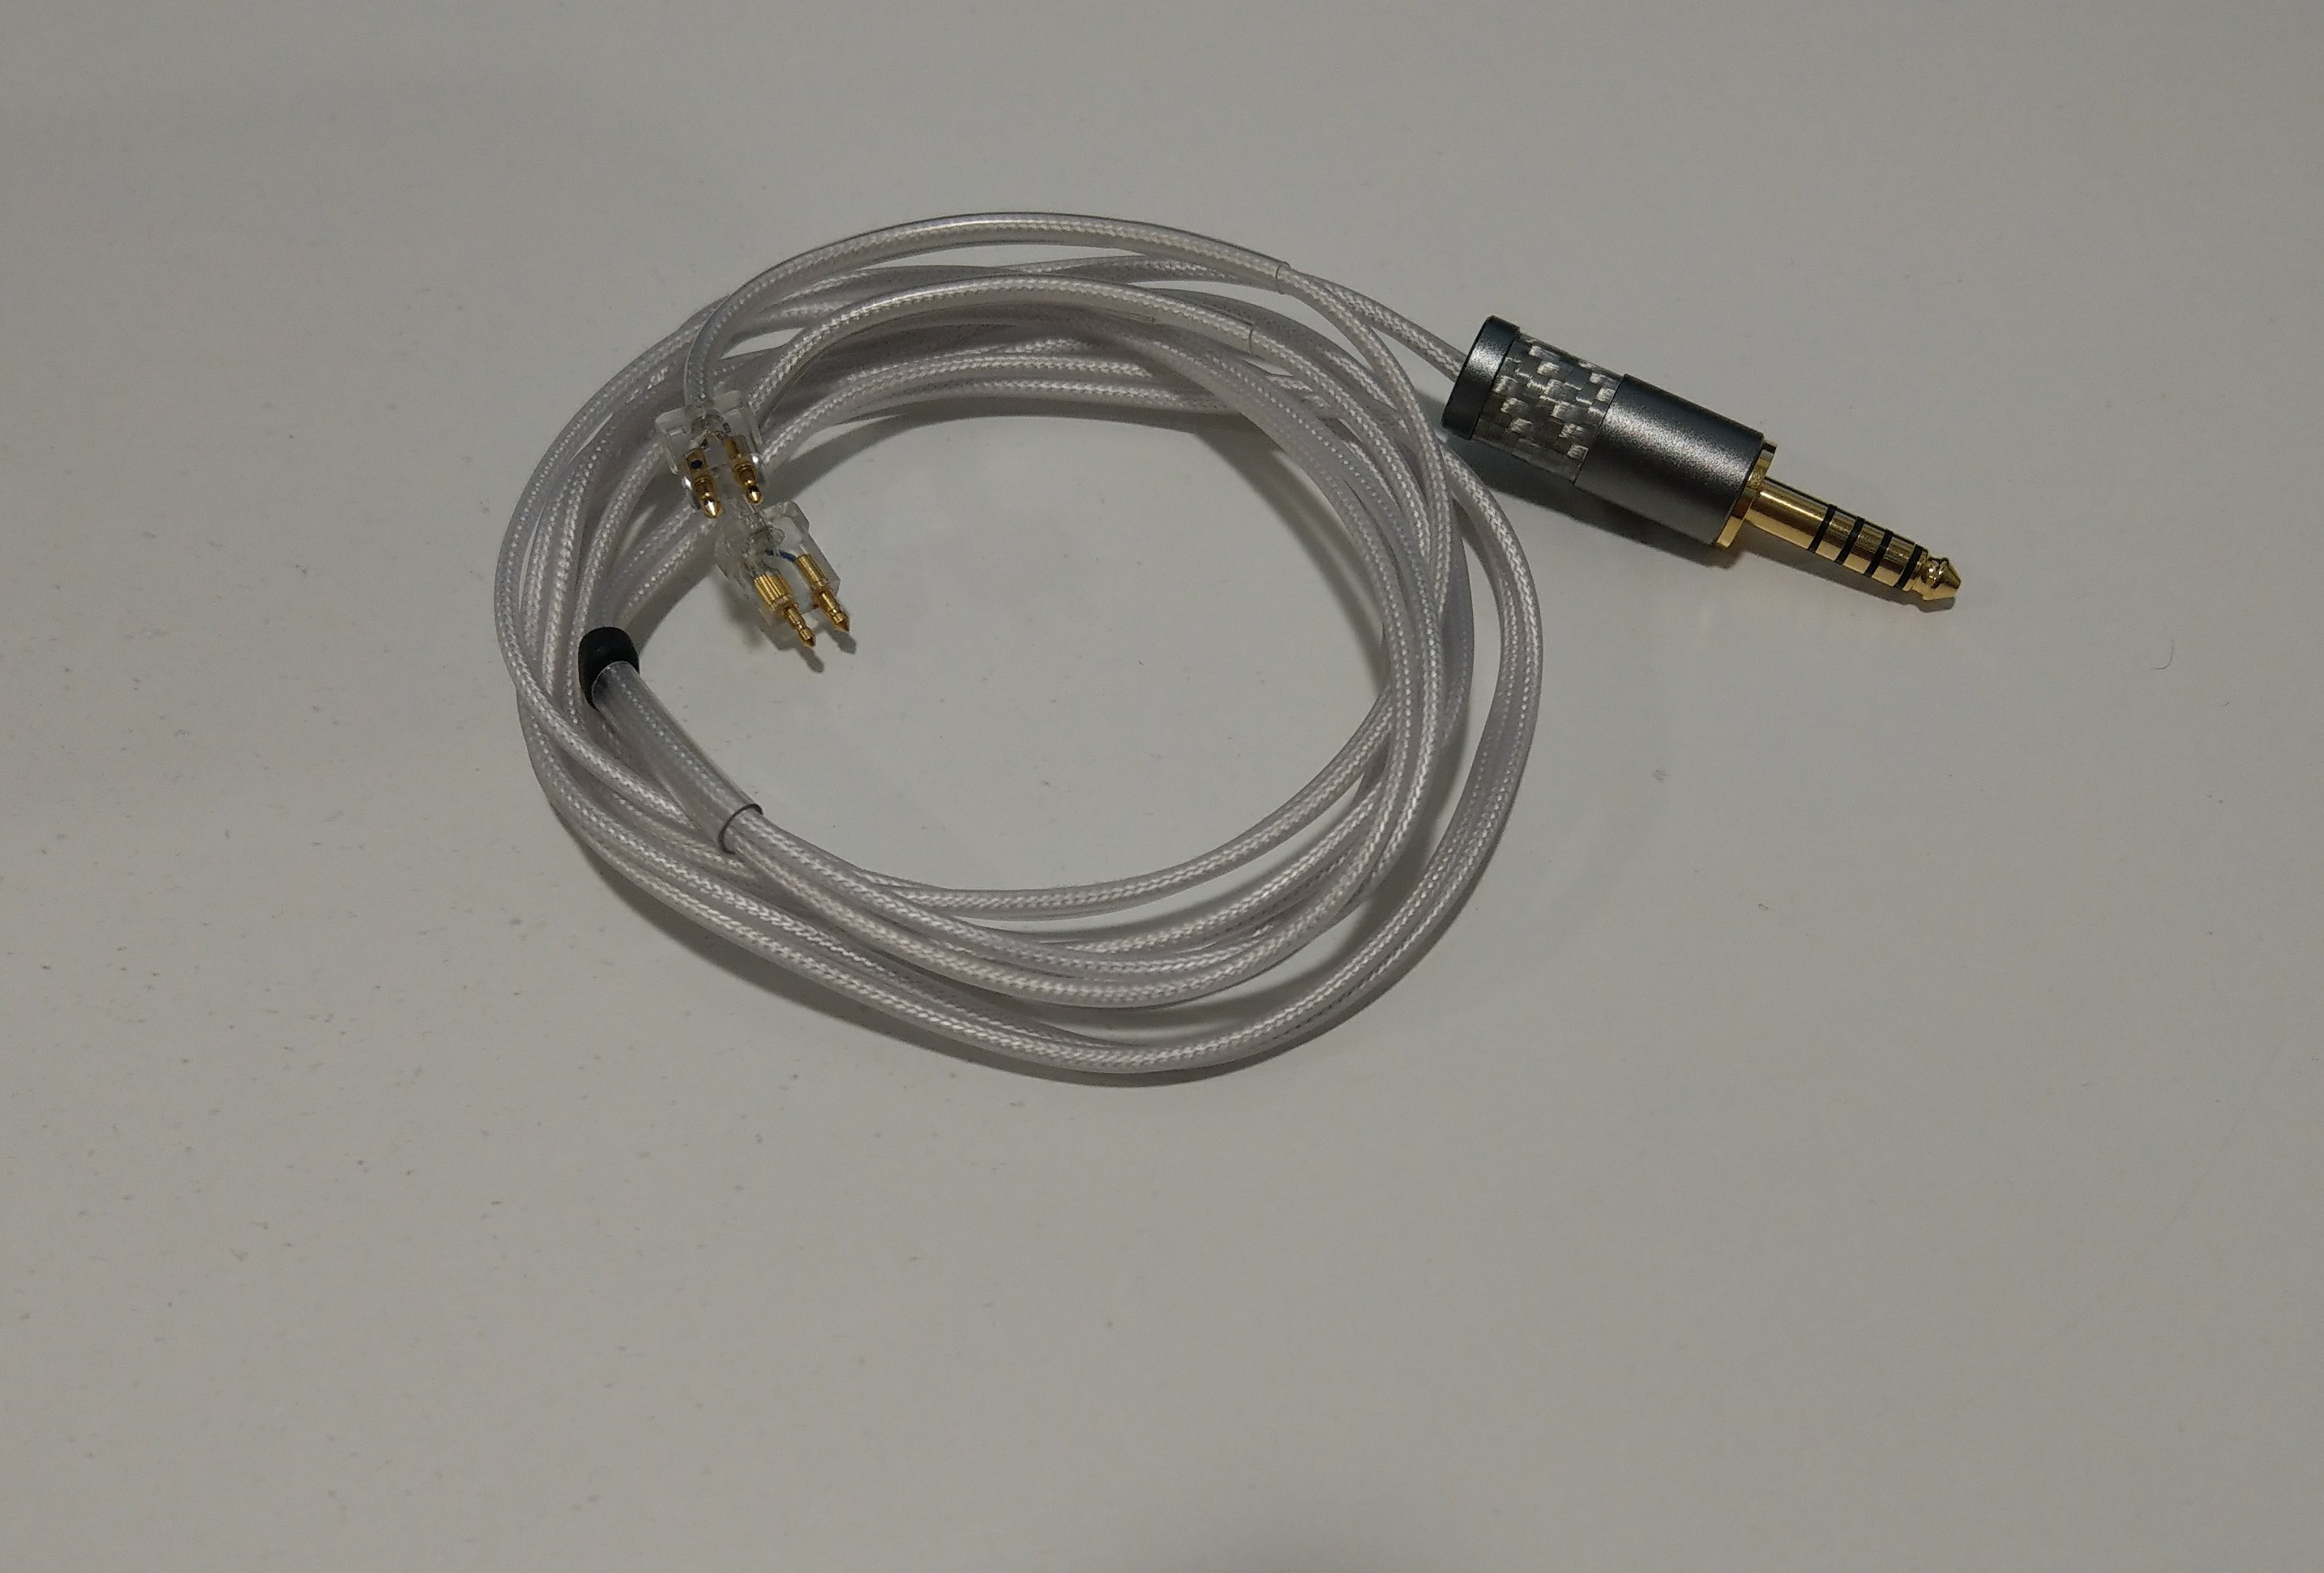 SOLD | Headphone Reviews and Discussion - Head-Fi.org